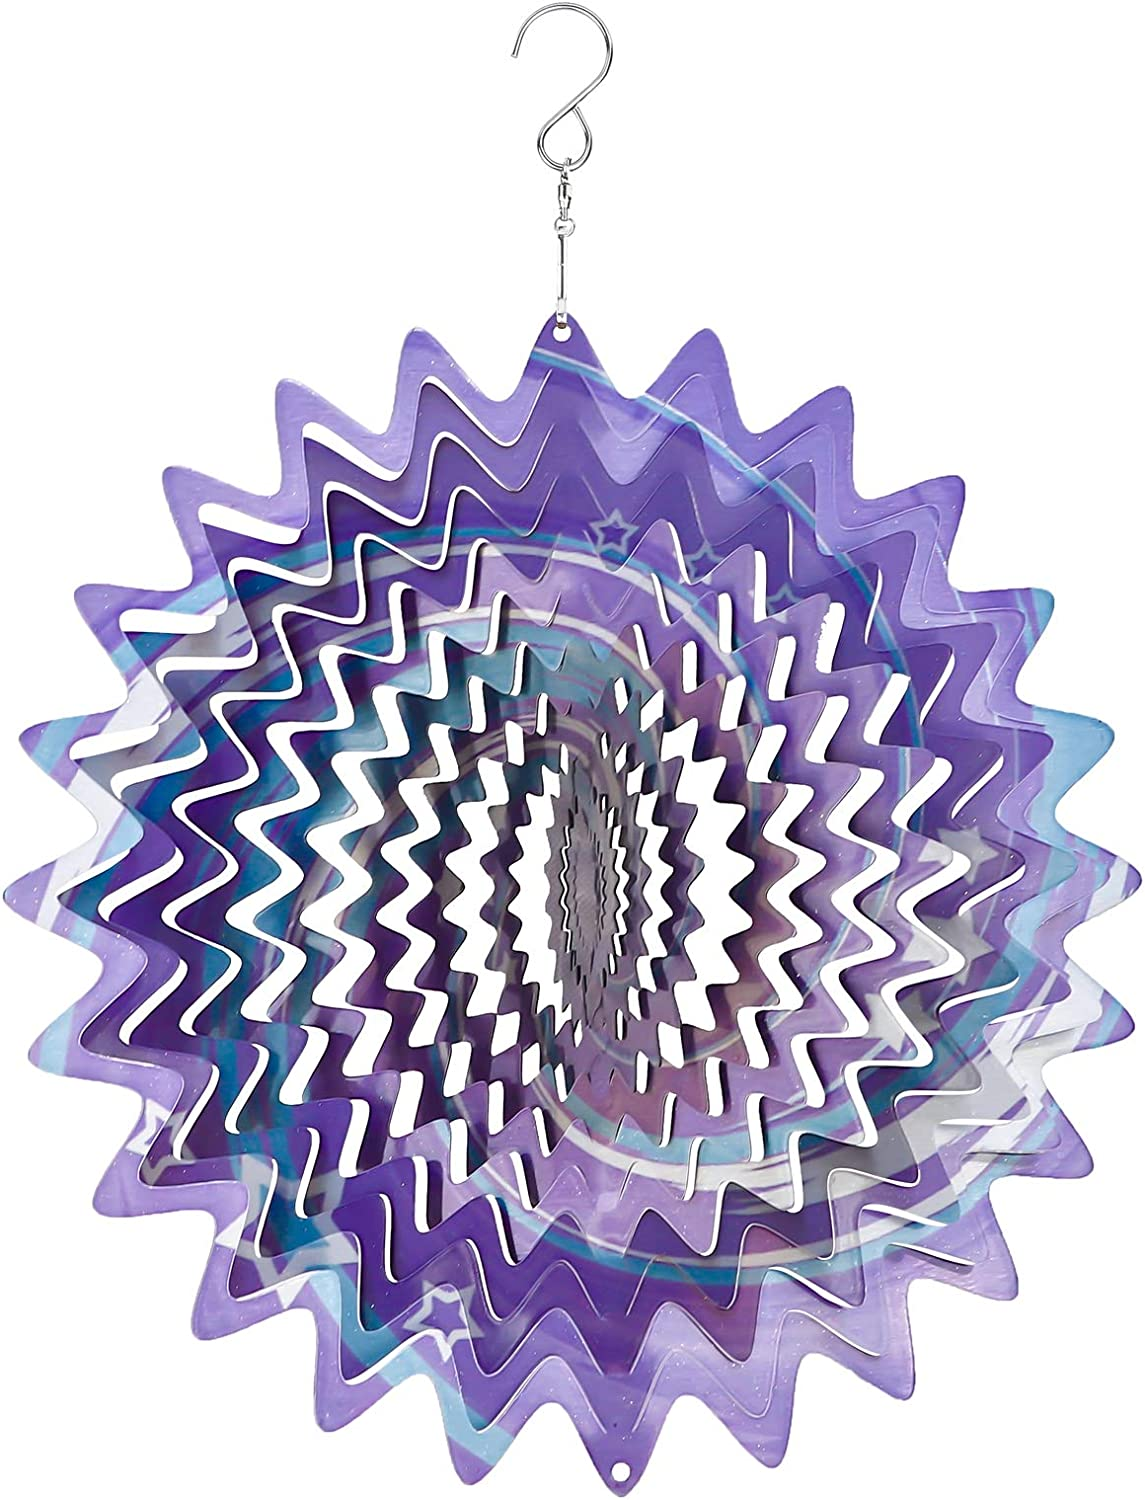 WOGOON Wind Spinners Outdoor Decorations 12 Inches, 3D Metal Wind Catcher Mandalas Art for Yard Garden Patio Home Decor, Multi Color Hanging Pinwheels Lawn Ornaments Gifts (Starry Sky)